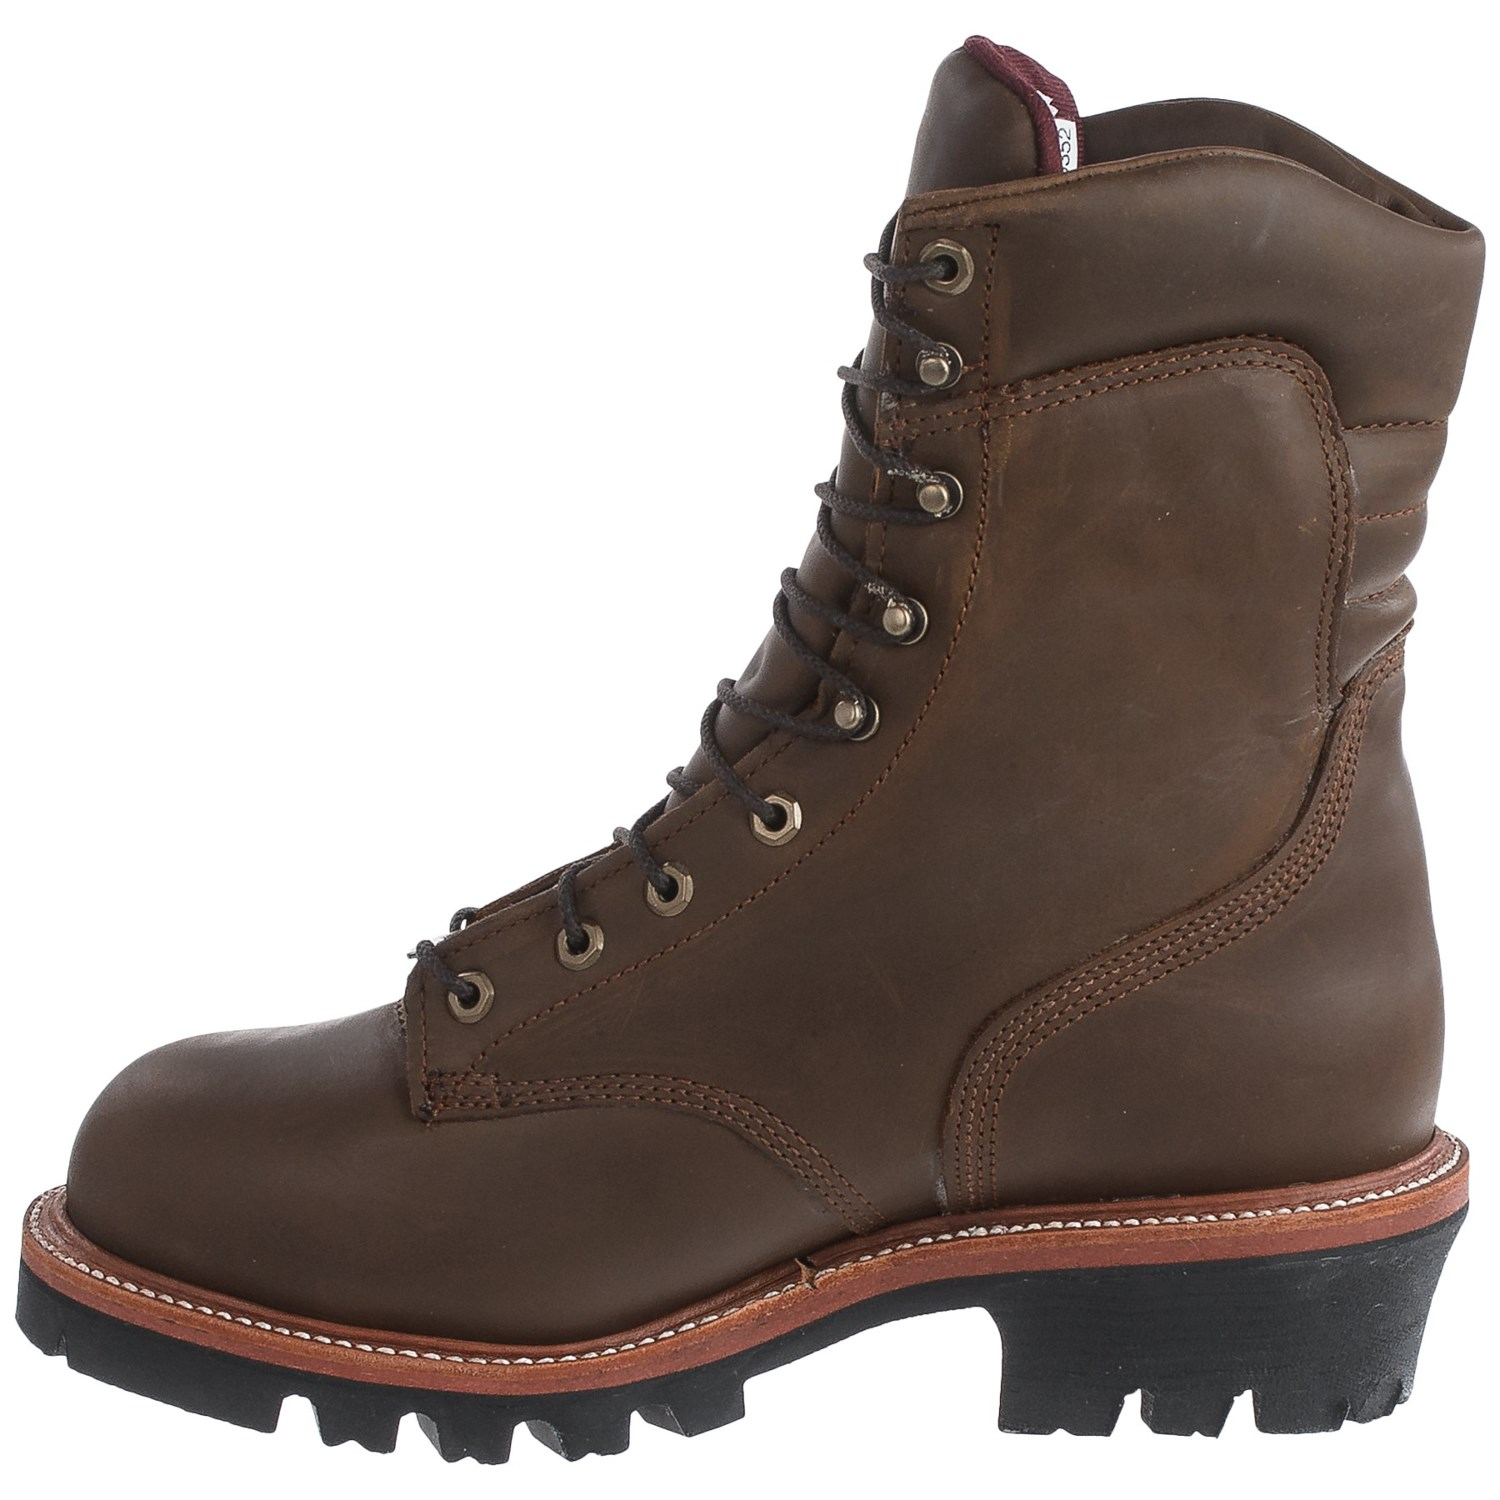 Chippewa Super Logger Steel Toe Work Boots (For Men) - Save 45%